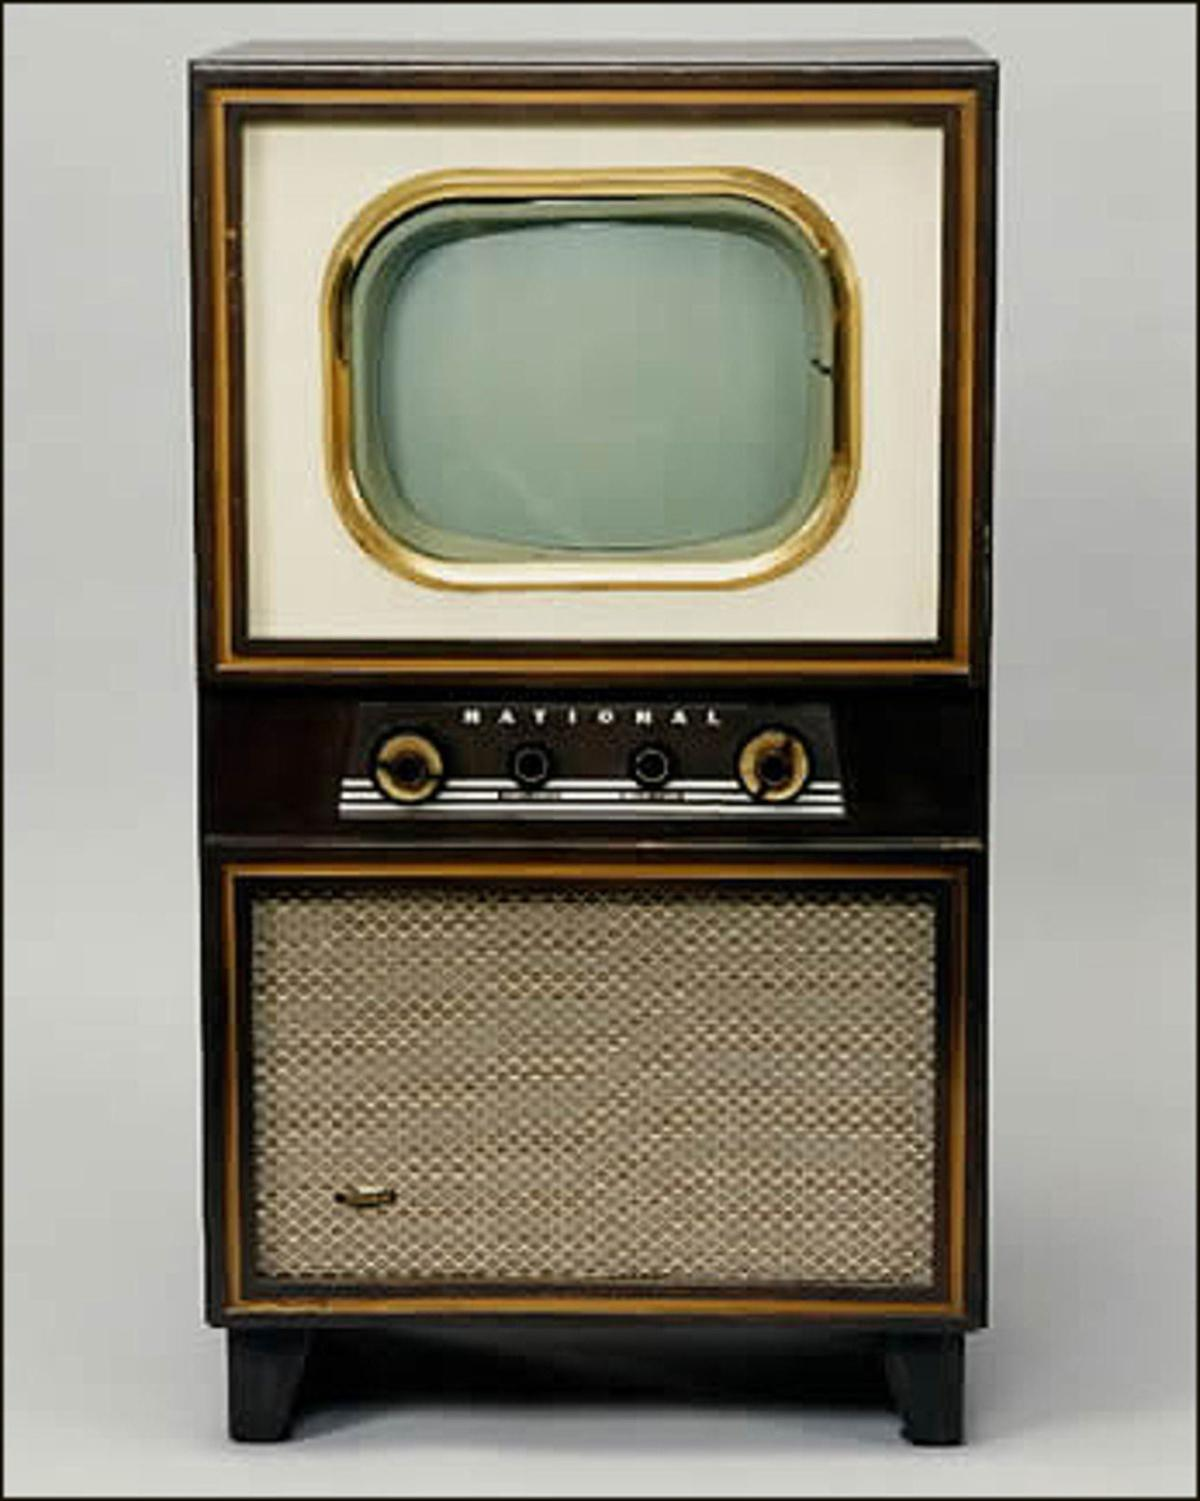 Vintage television sets entertain many collectors ...